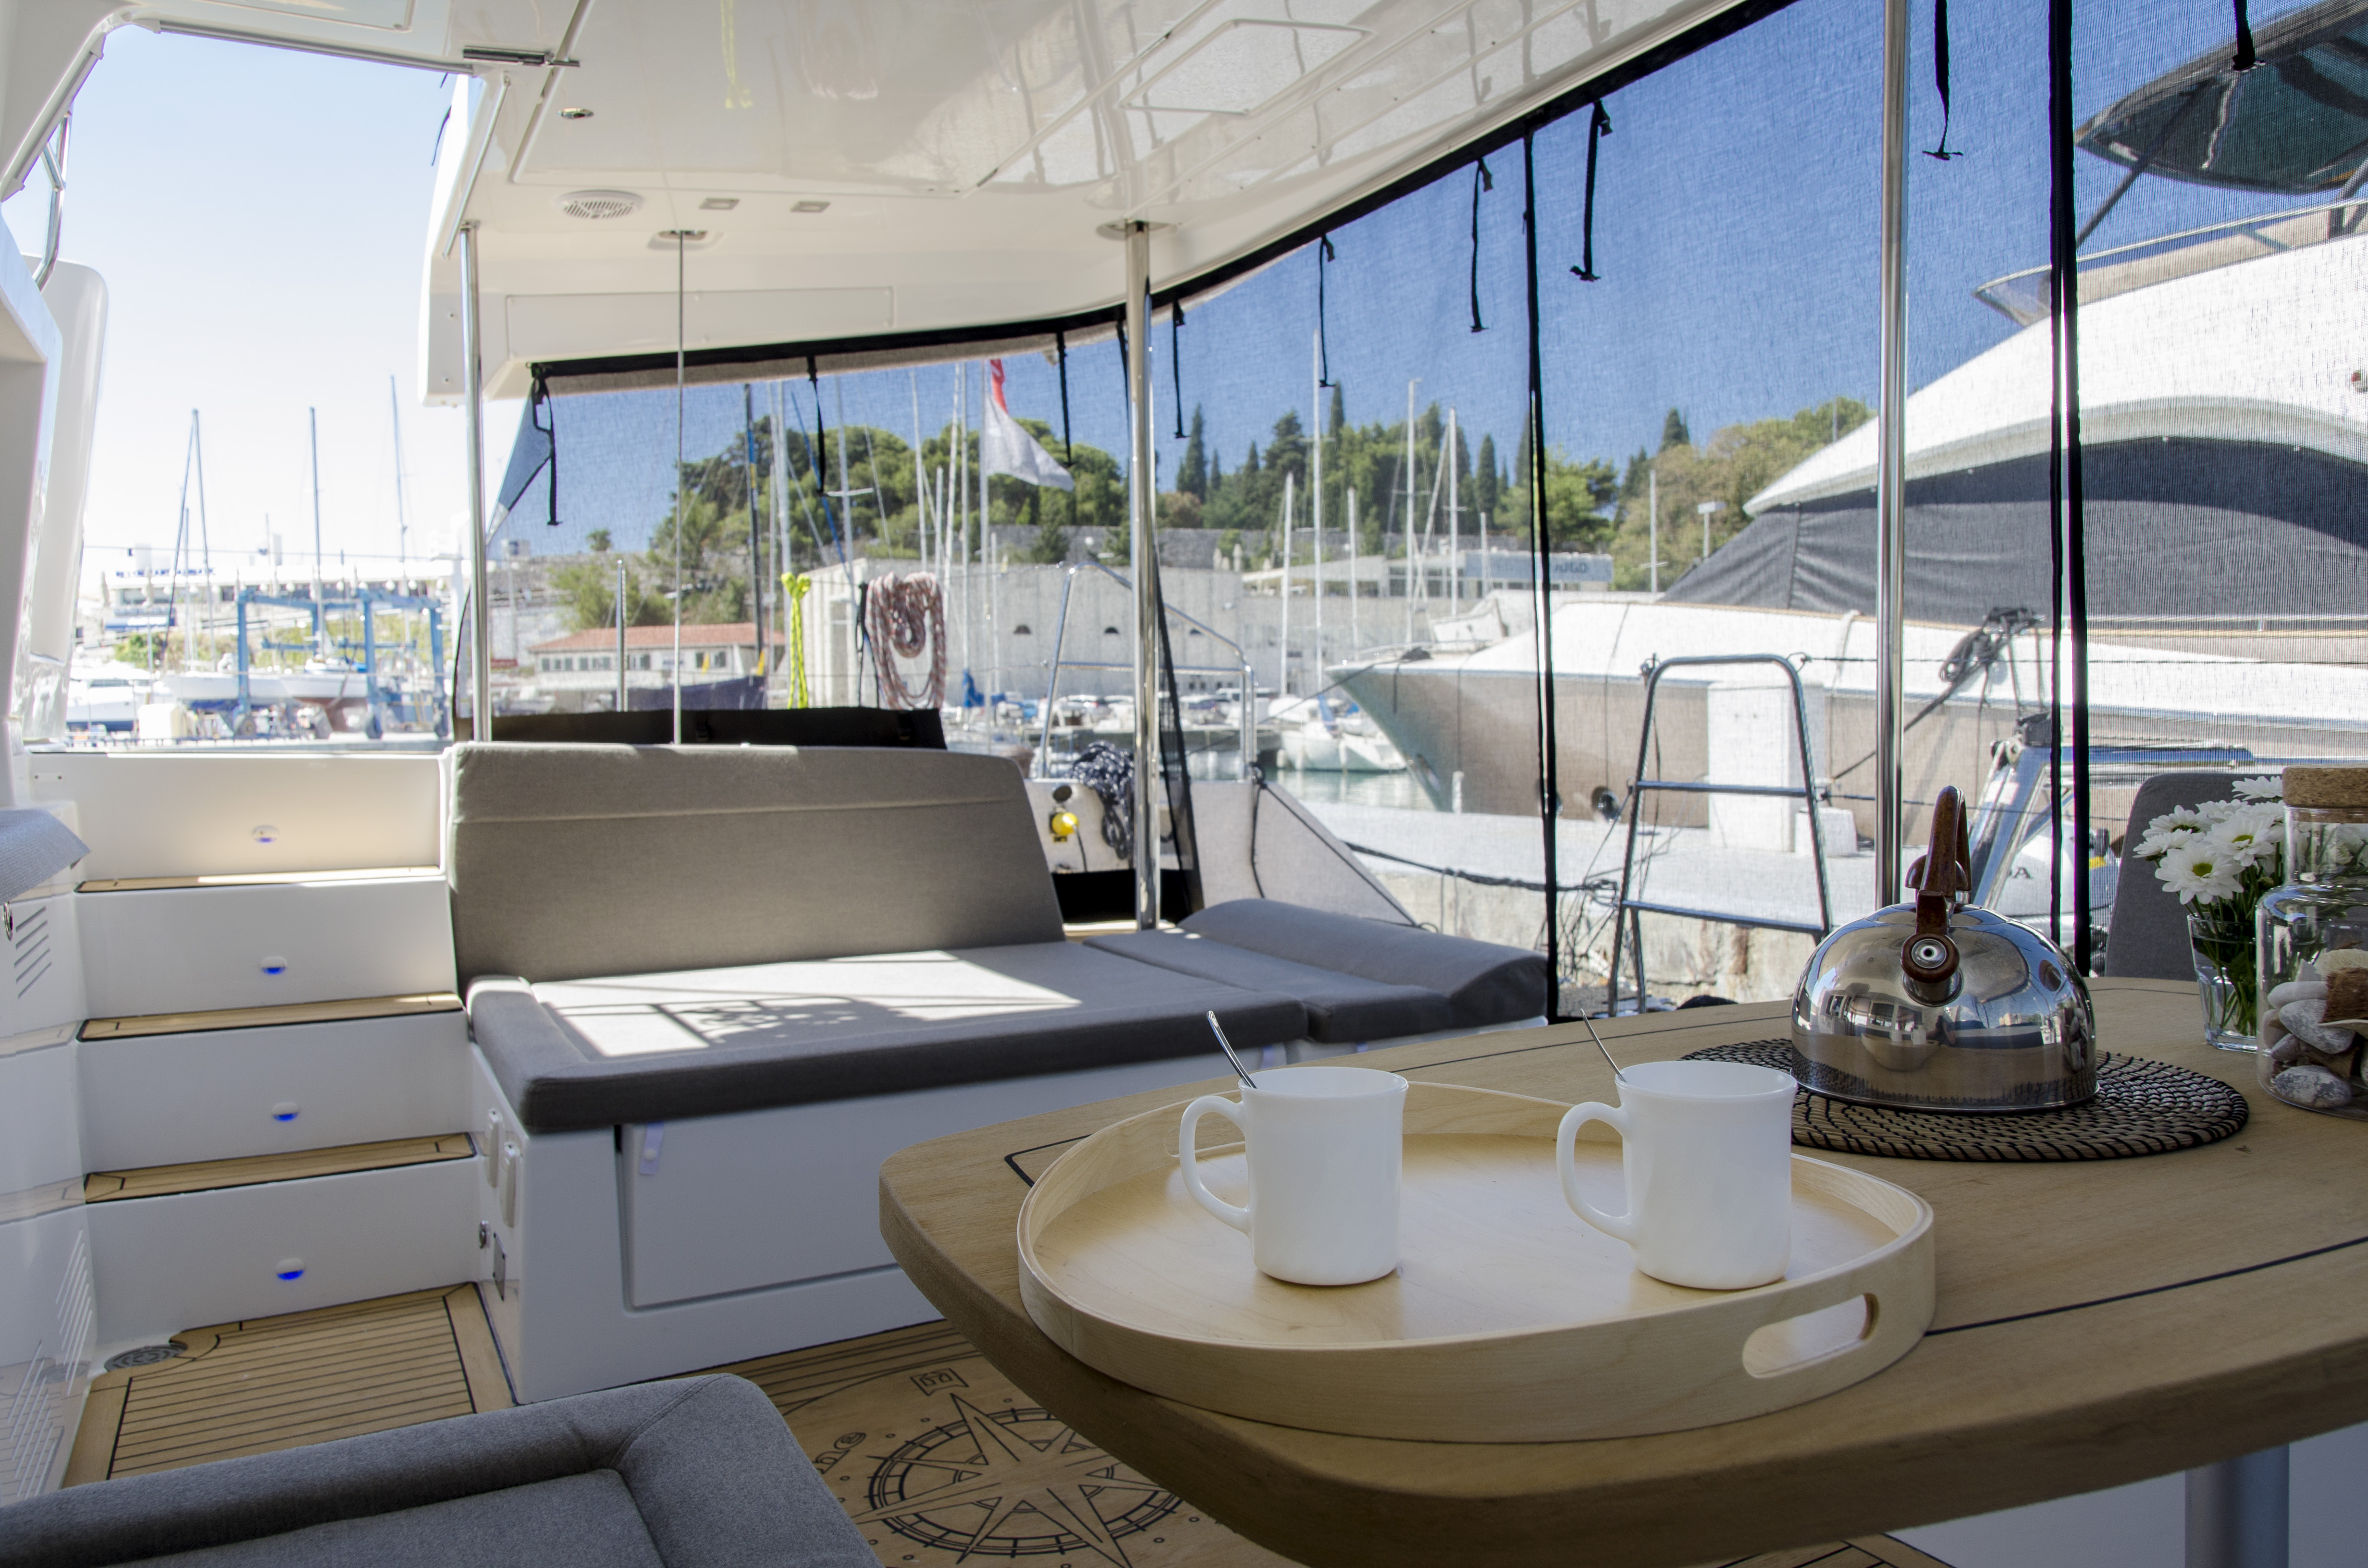 Lagoon 450 F (2016)equipped with generator, A/C (s (PRINCESS IVA)  - 20